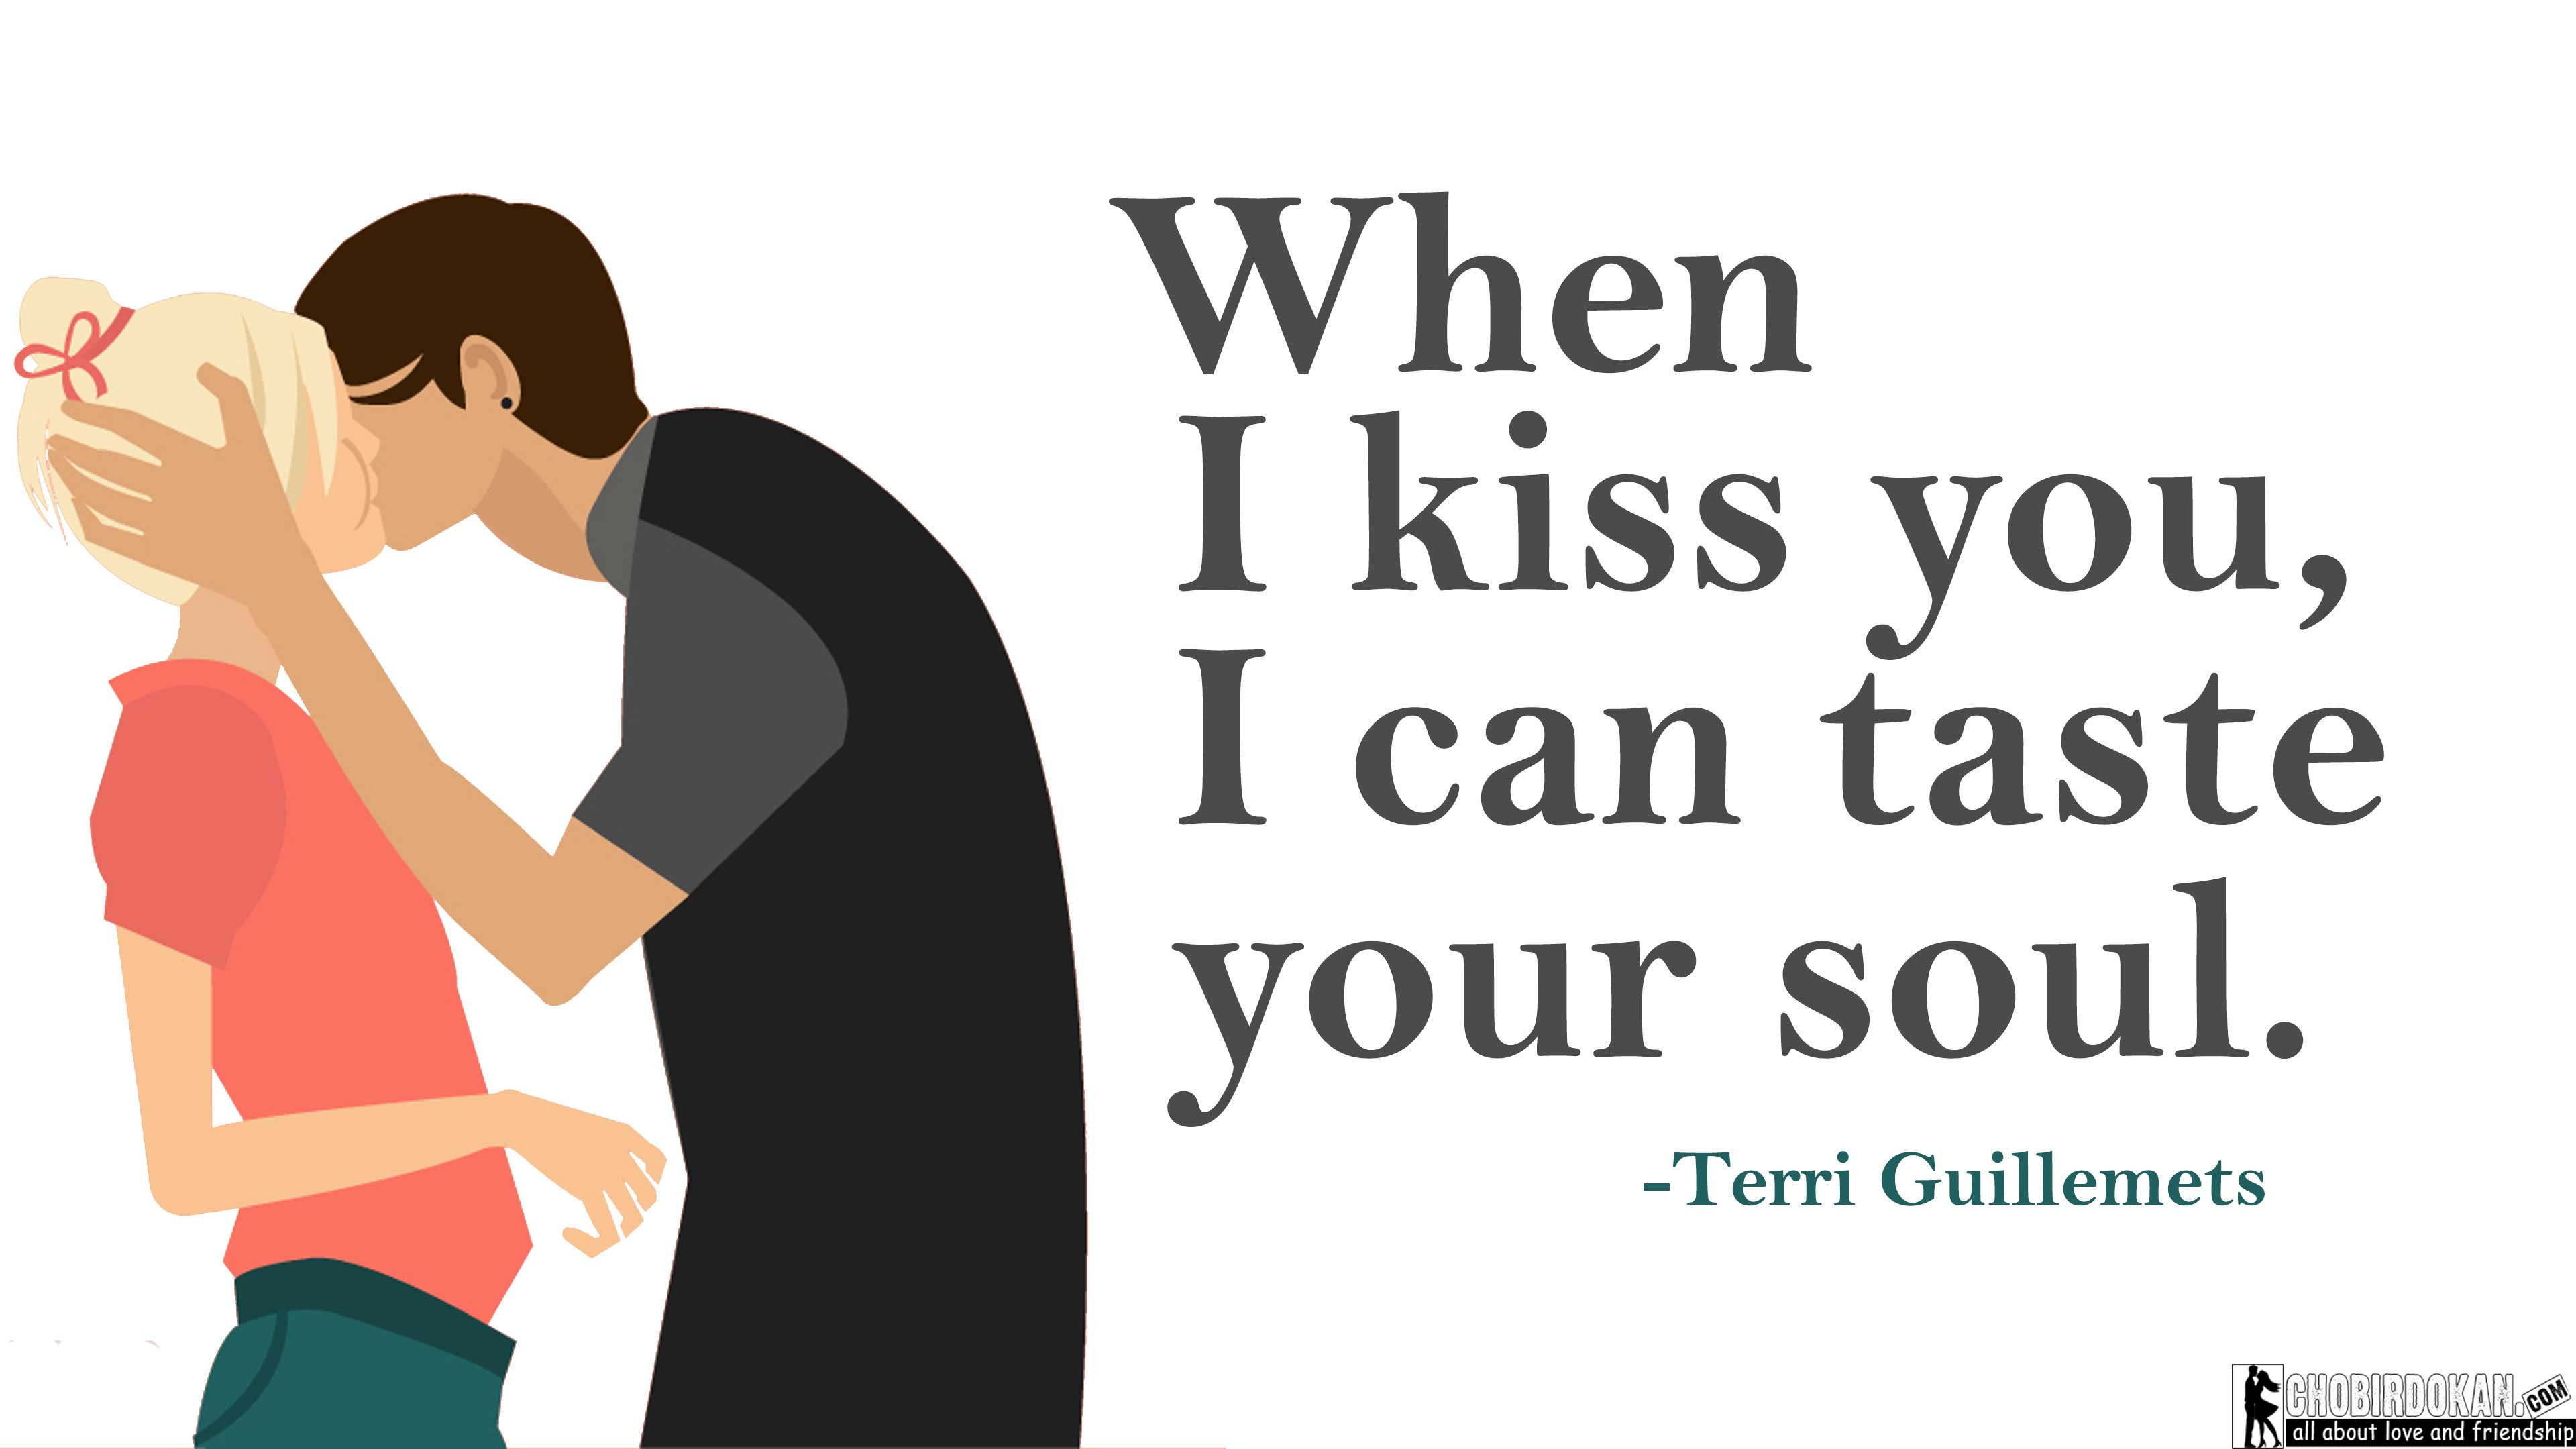 Cute Kissing Quotes Images For Her/Him -Best Love Kiss Quotes